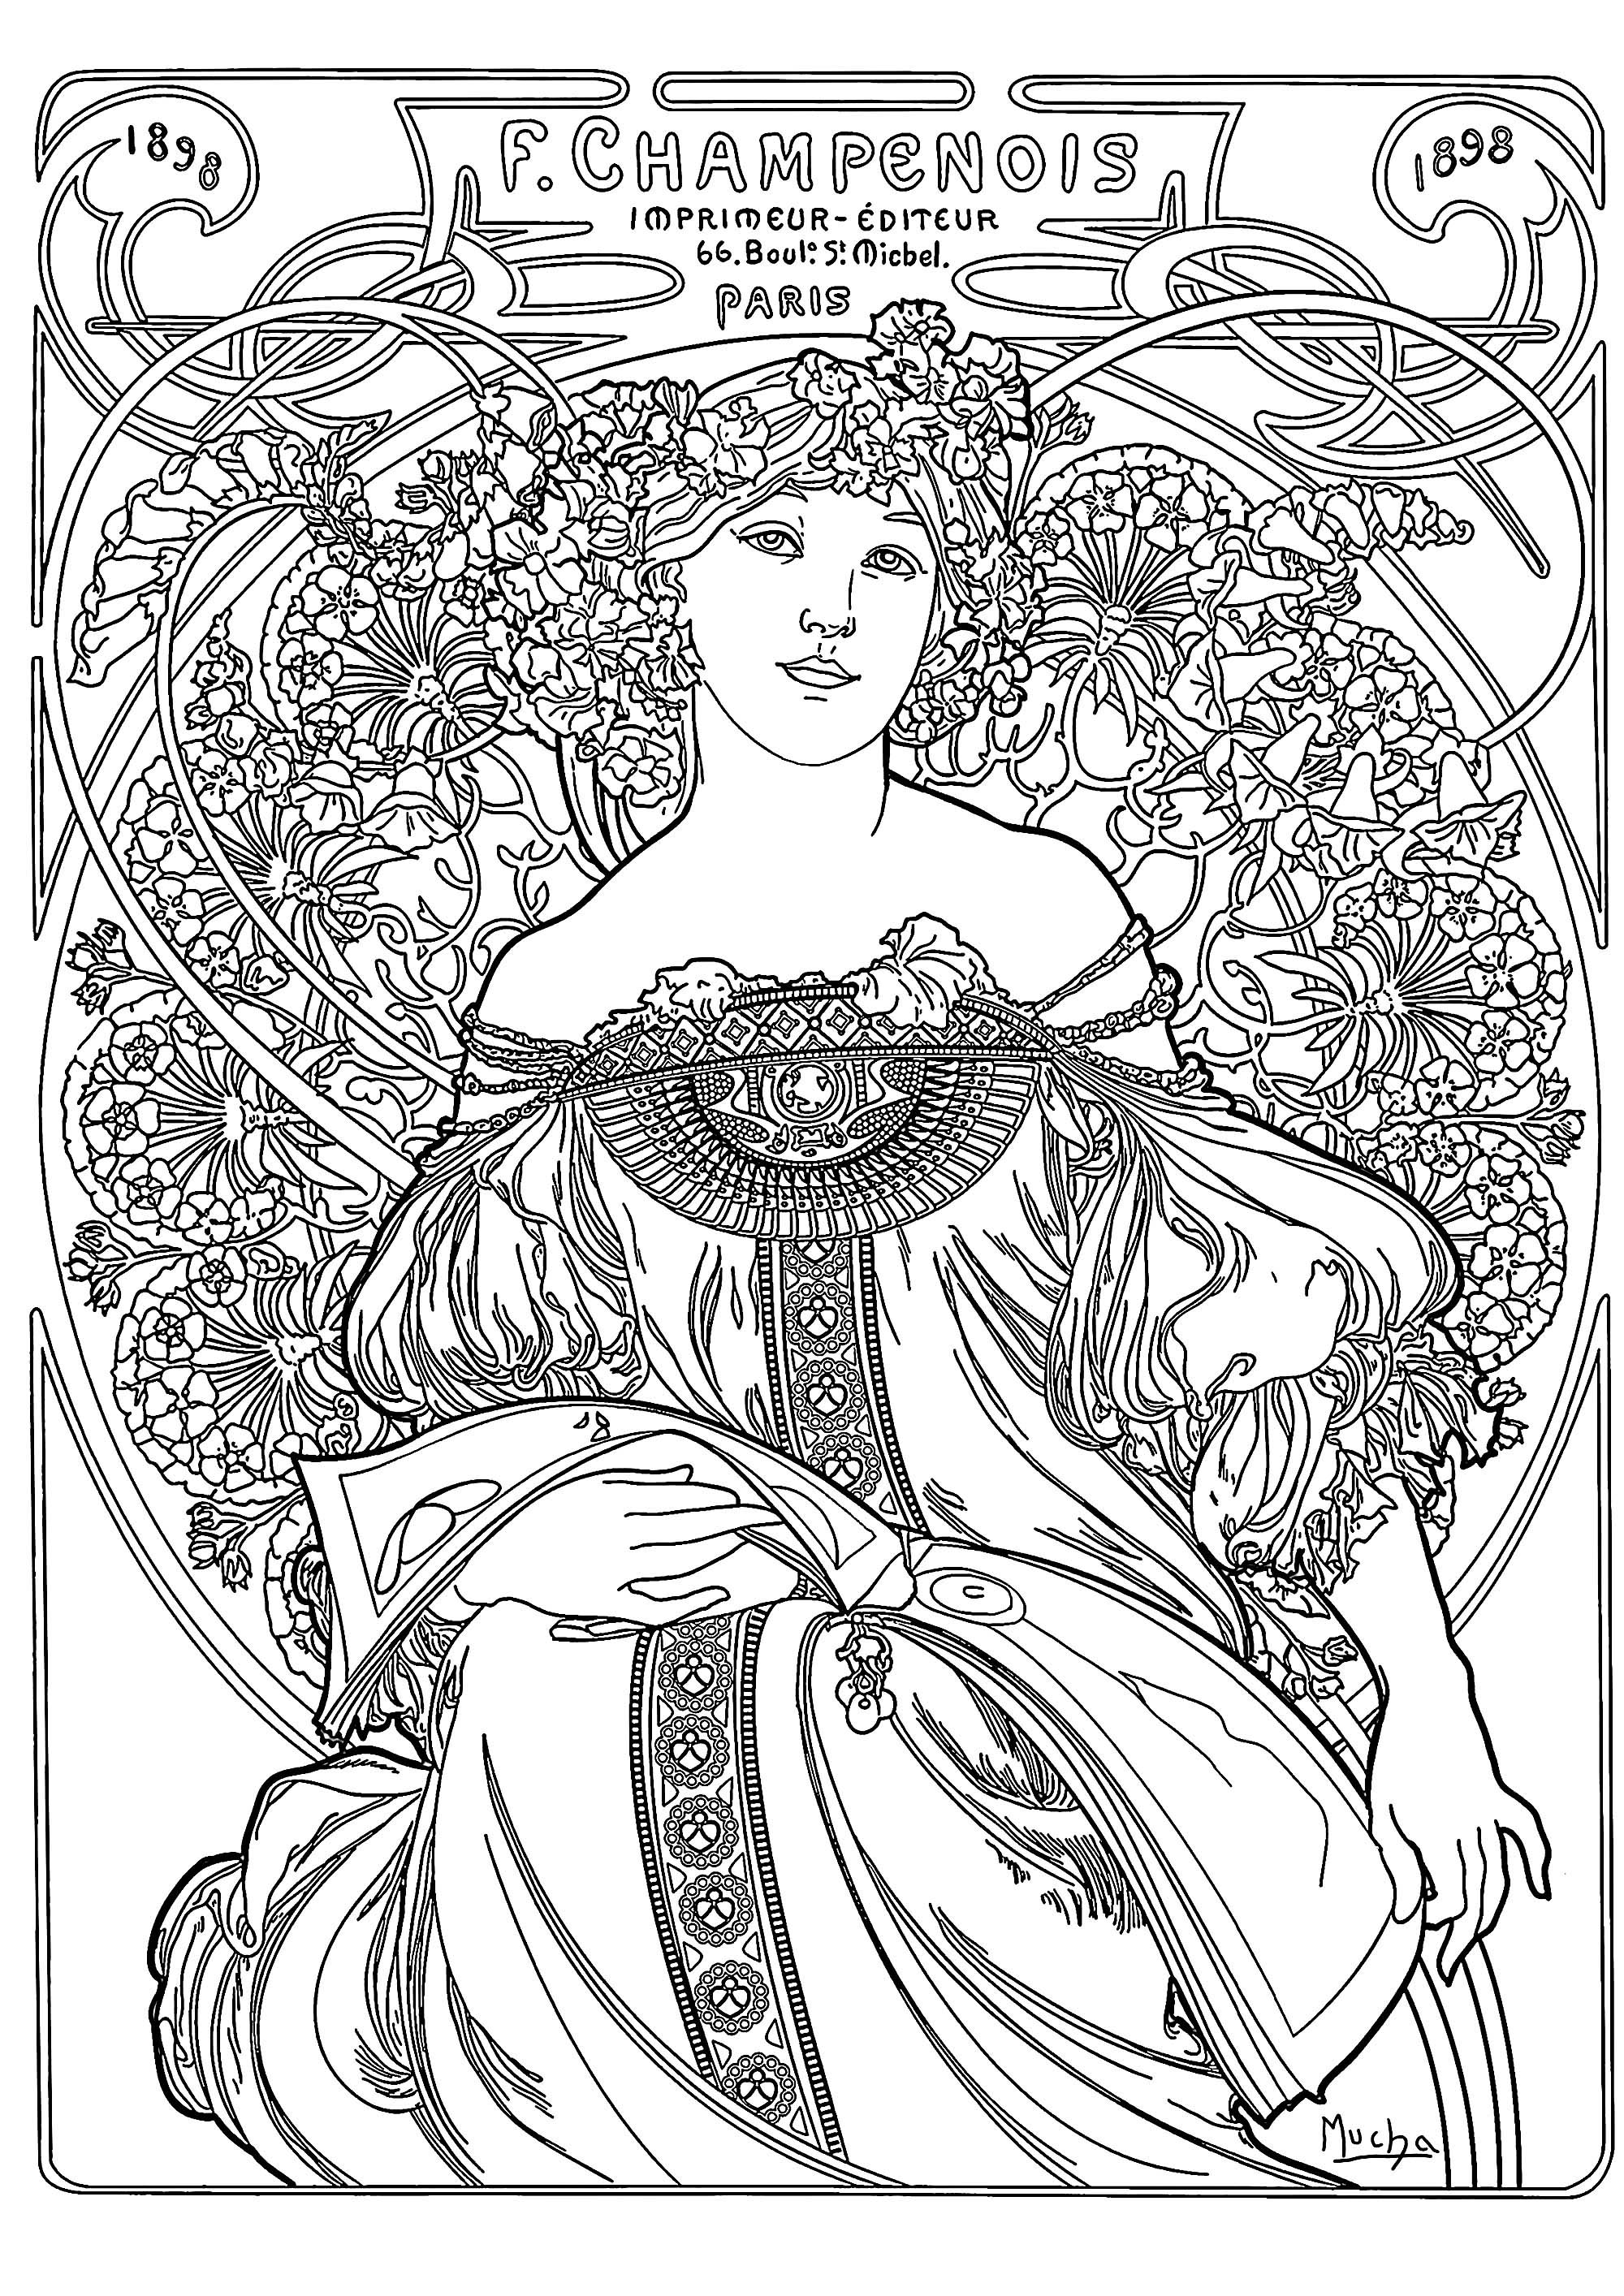 Disegni da Colorare per Adulti : Art nouveau - 1